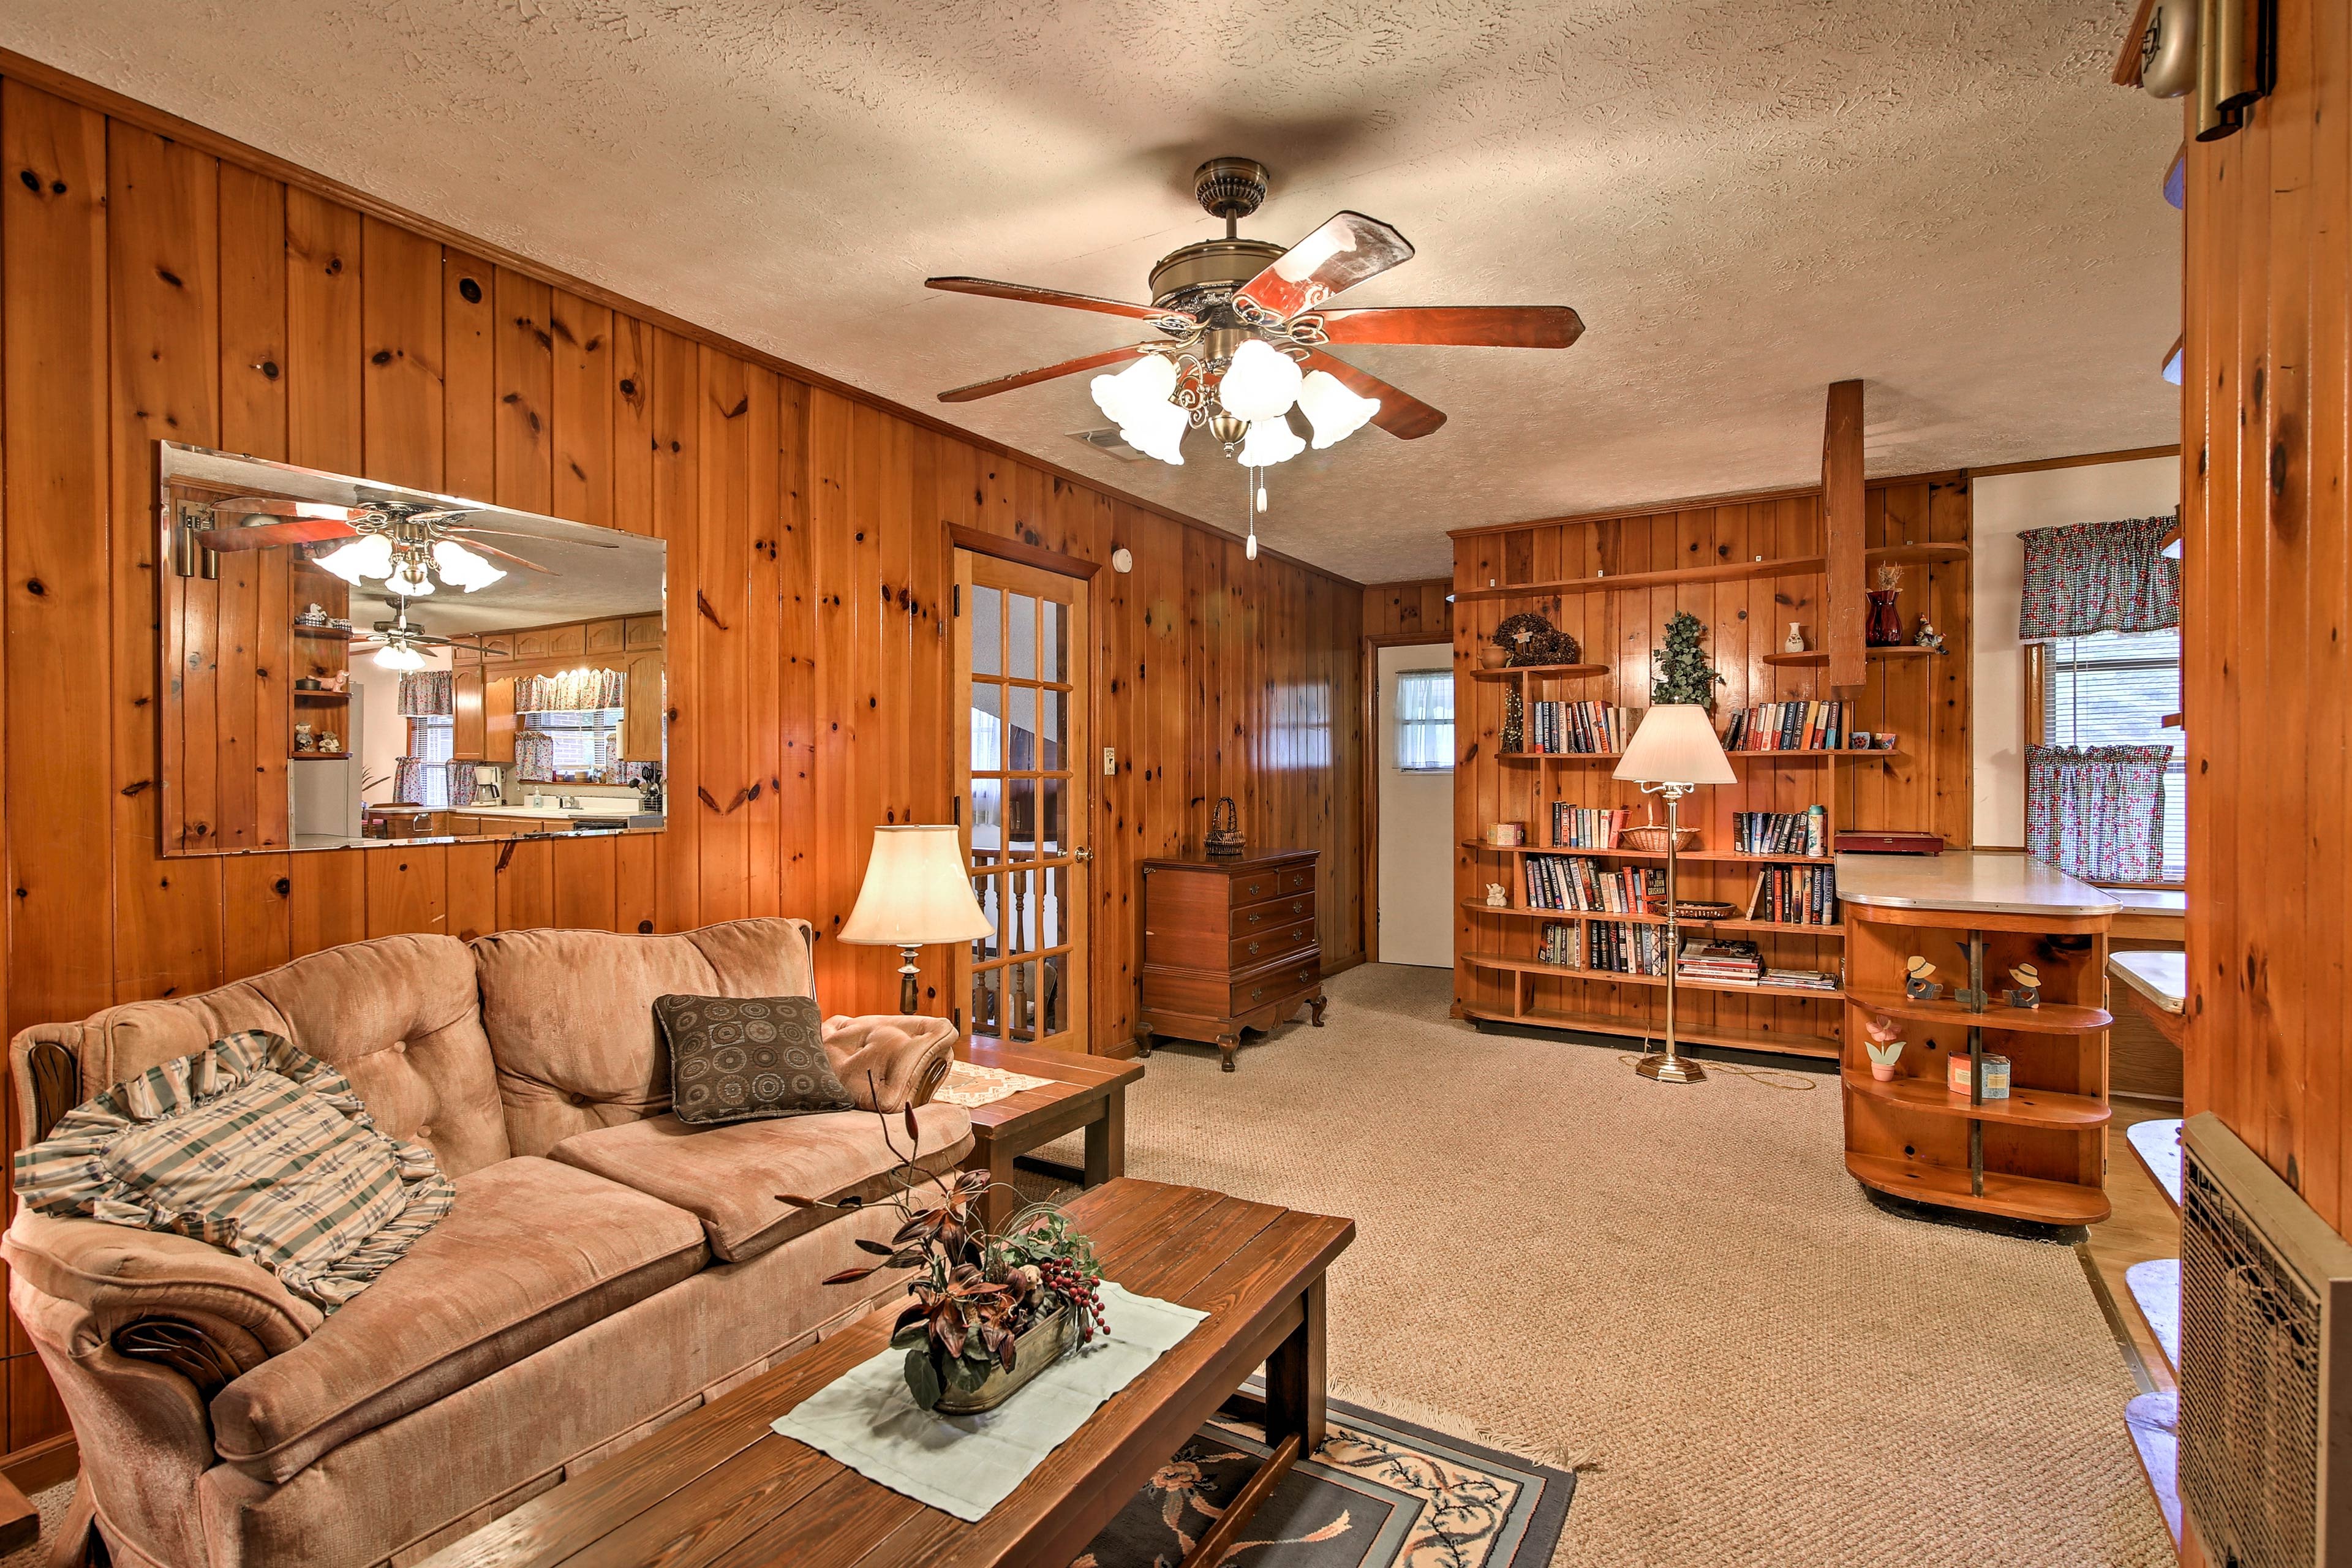 The 1,800-square-foot interior hosts cozy wood paneling & the comforts of home.